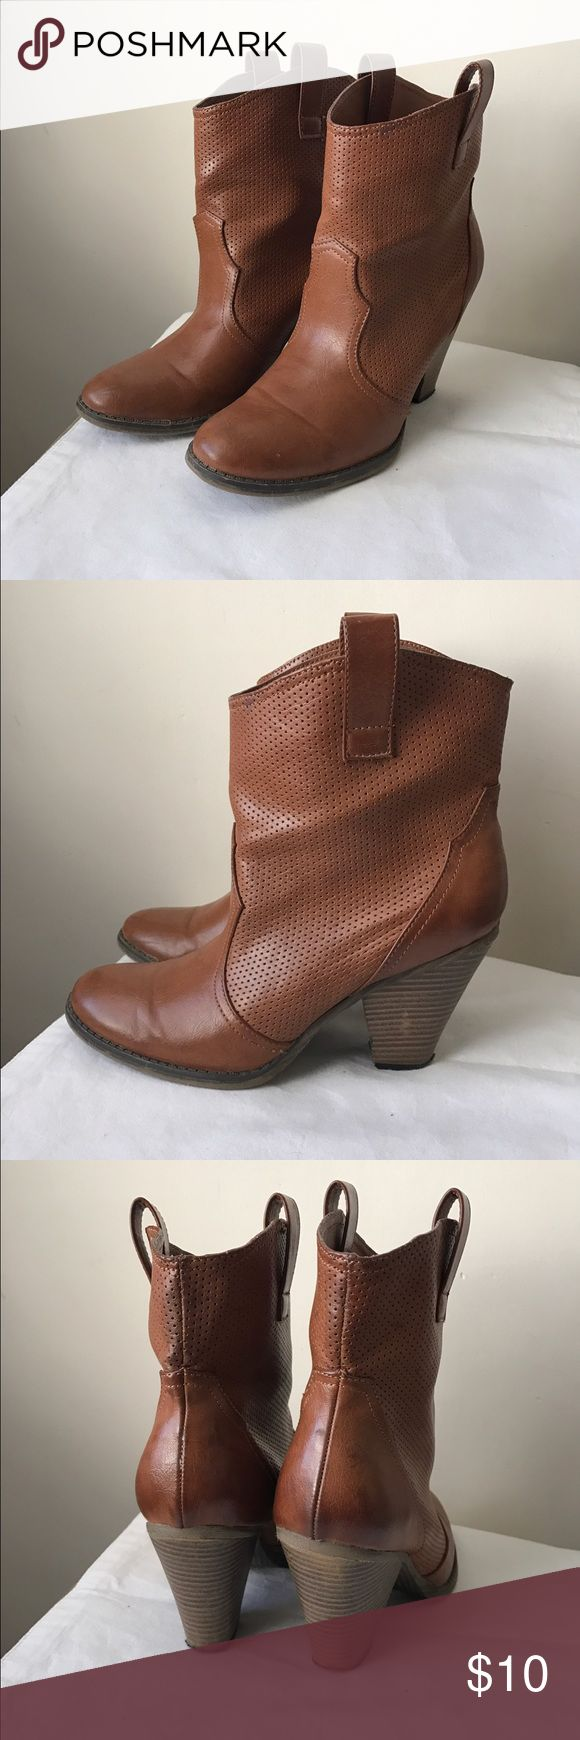 """MIA brown heeled boots Brown vegan leather boots - heeled cowgirl style - super cute! - 3"""" chunky heel - size 8.5 MIA Shoes Heeled Boots"""